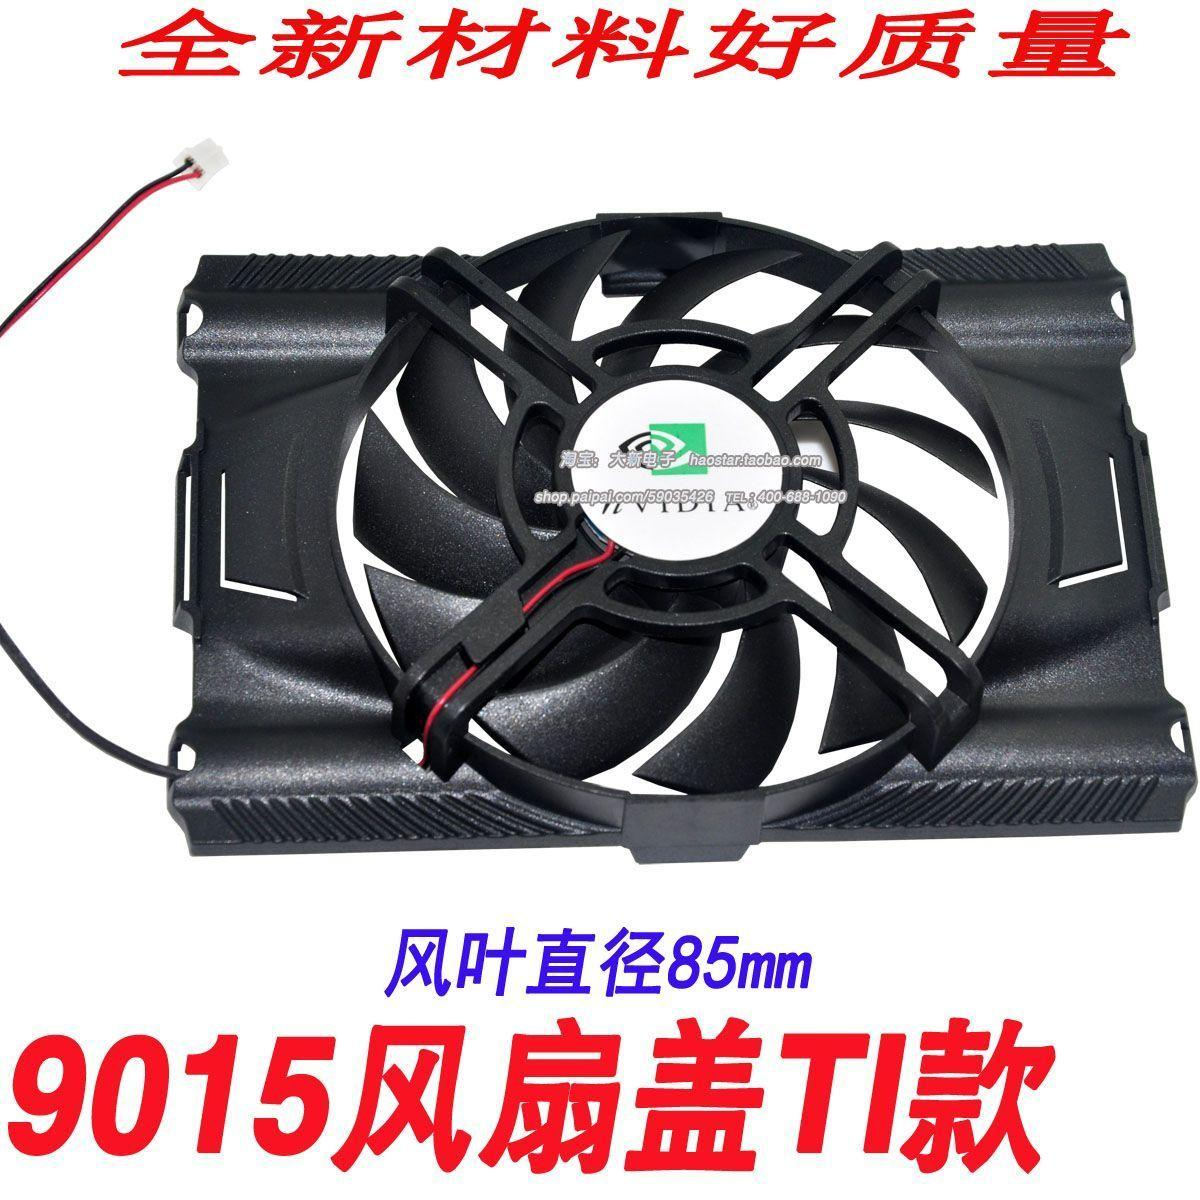 Graphics cards, radiators, fans, video cards, fans, gtx650, gt640, gt630, gt440, gt430, gt240